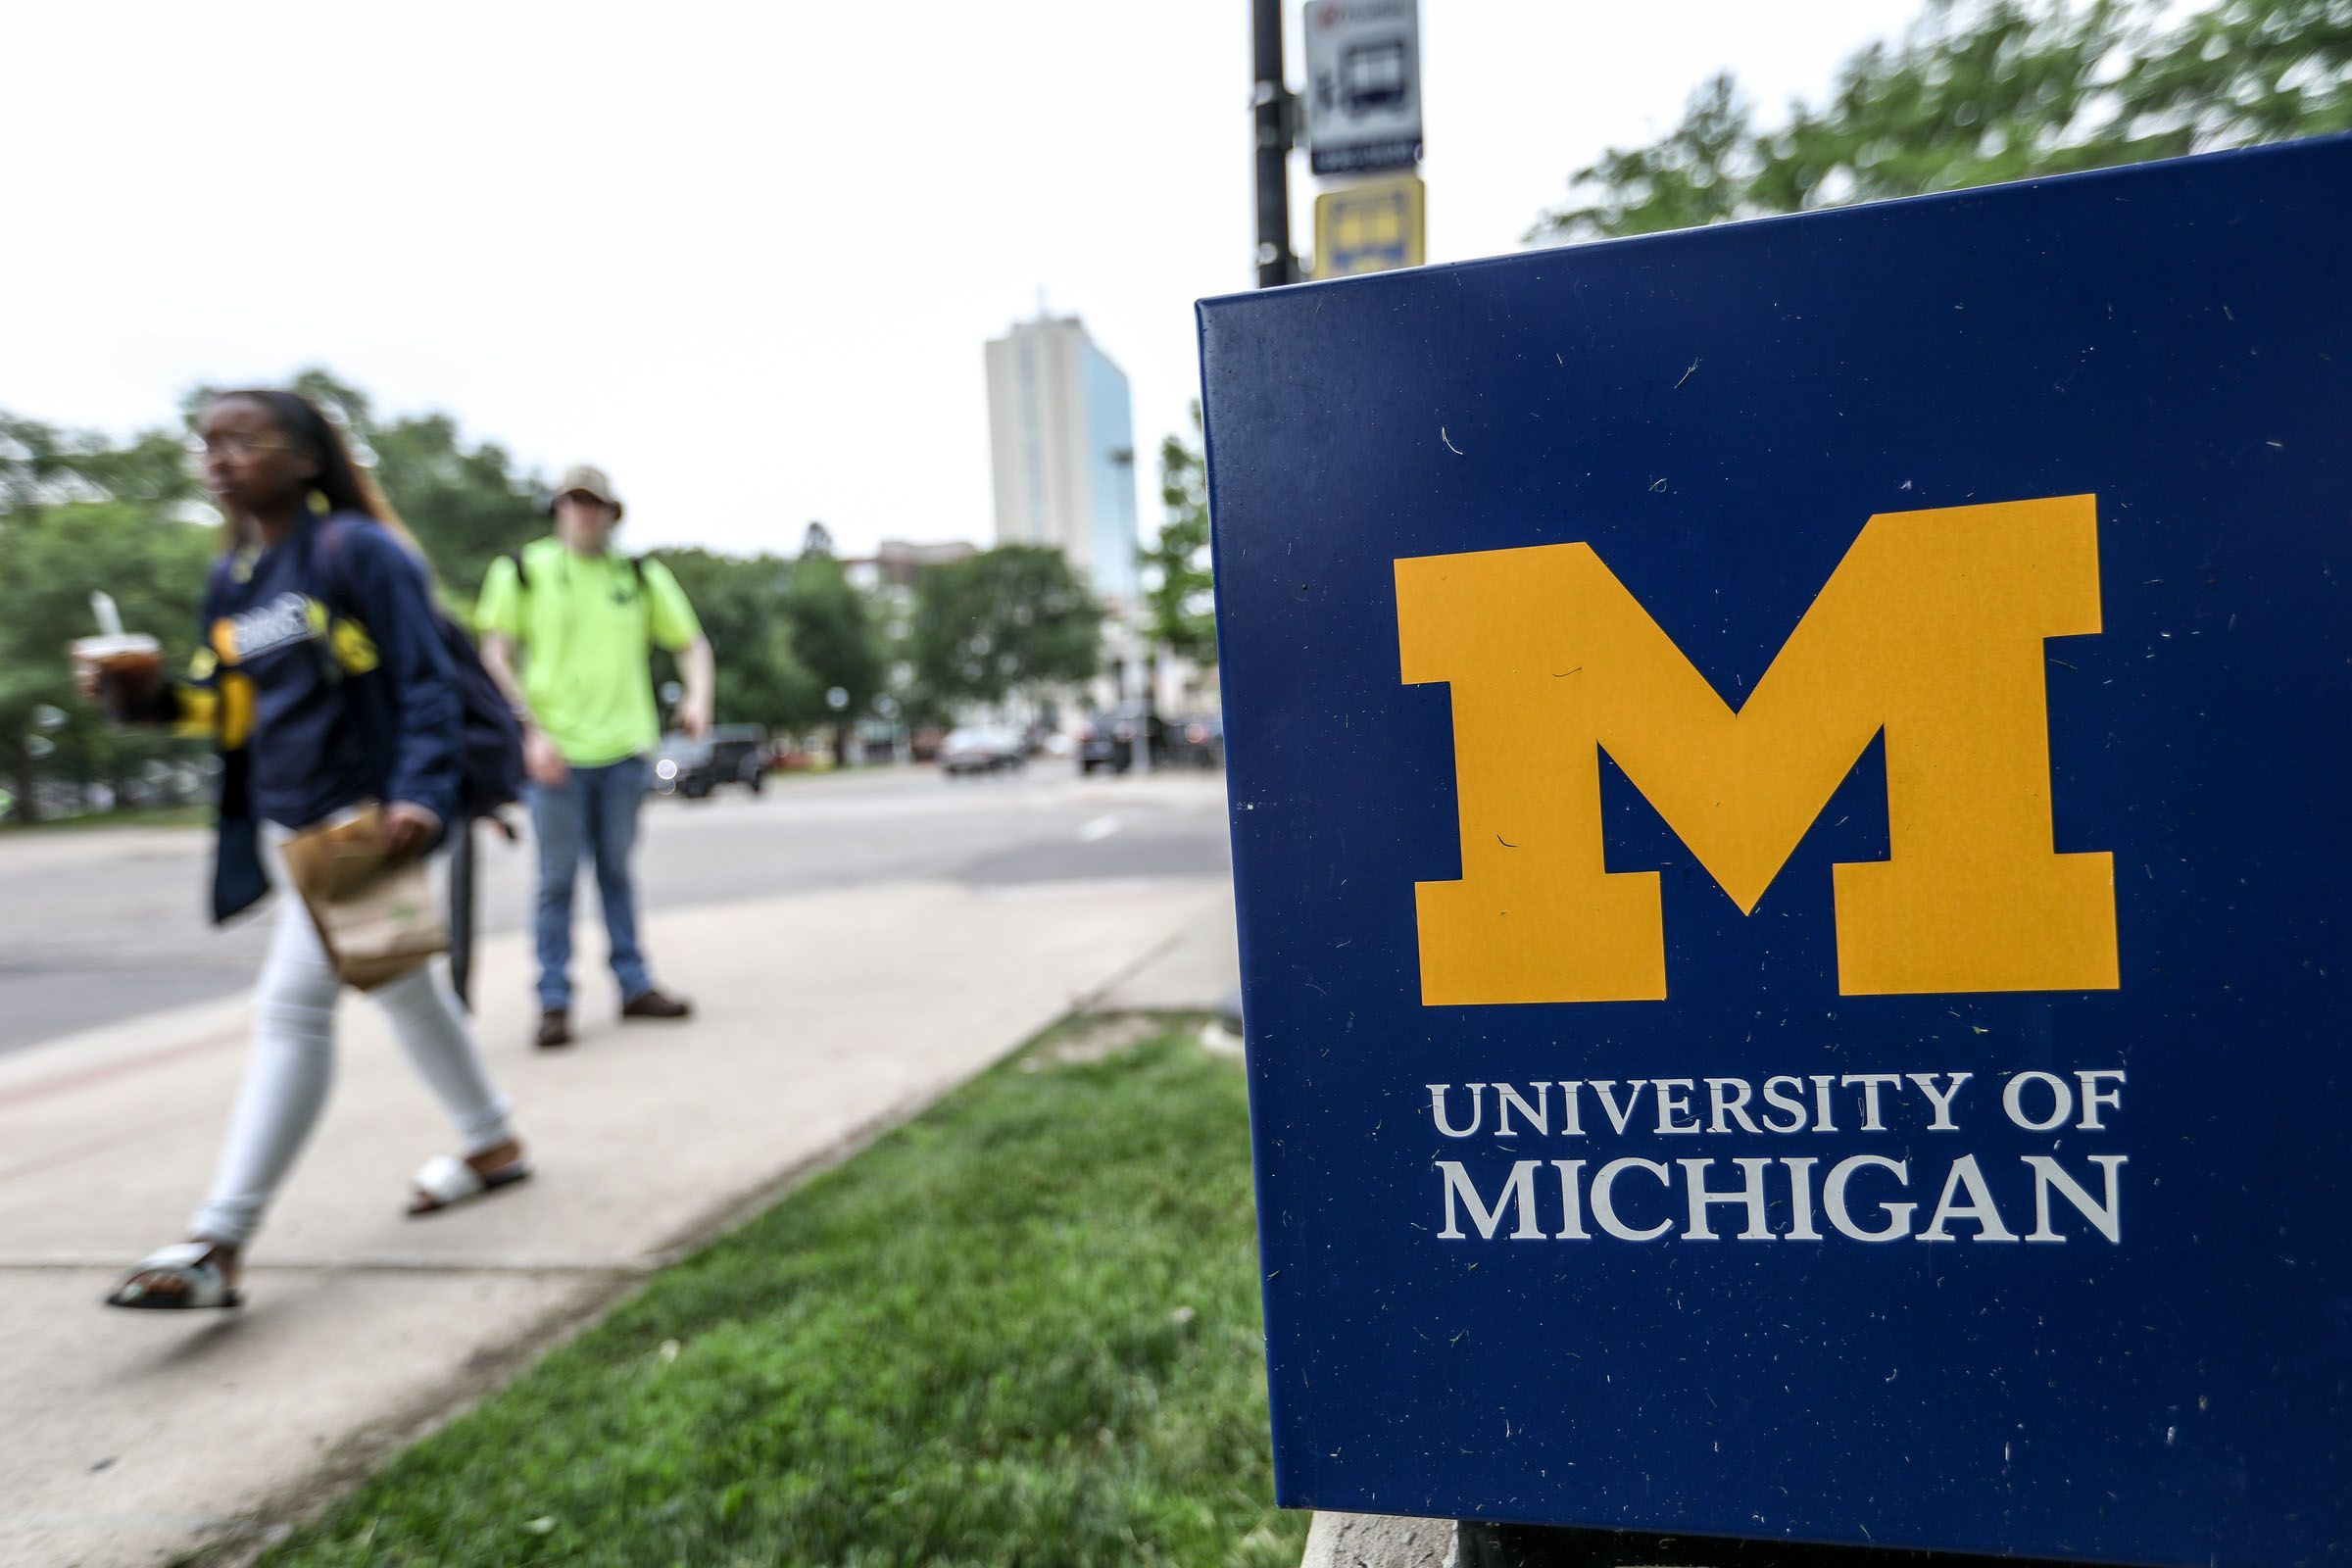 University of Michigan to host presidential debate in 2020